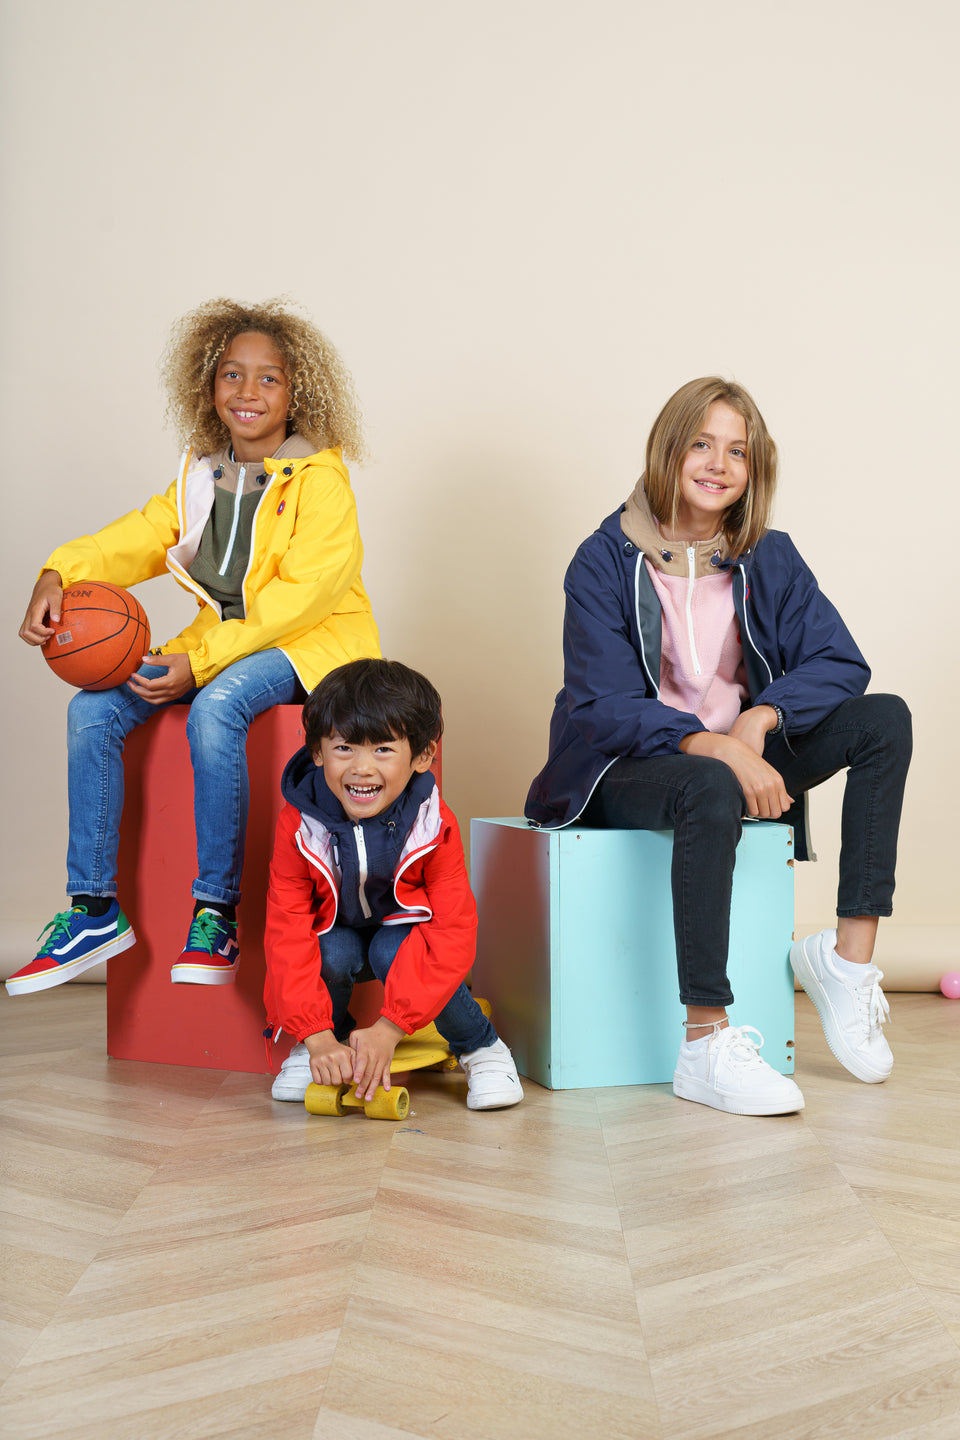                                                                                                                                                                                                           Discover our first children's collection